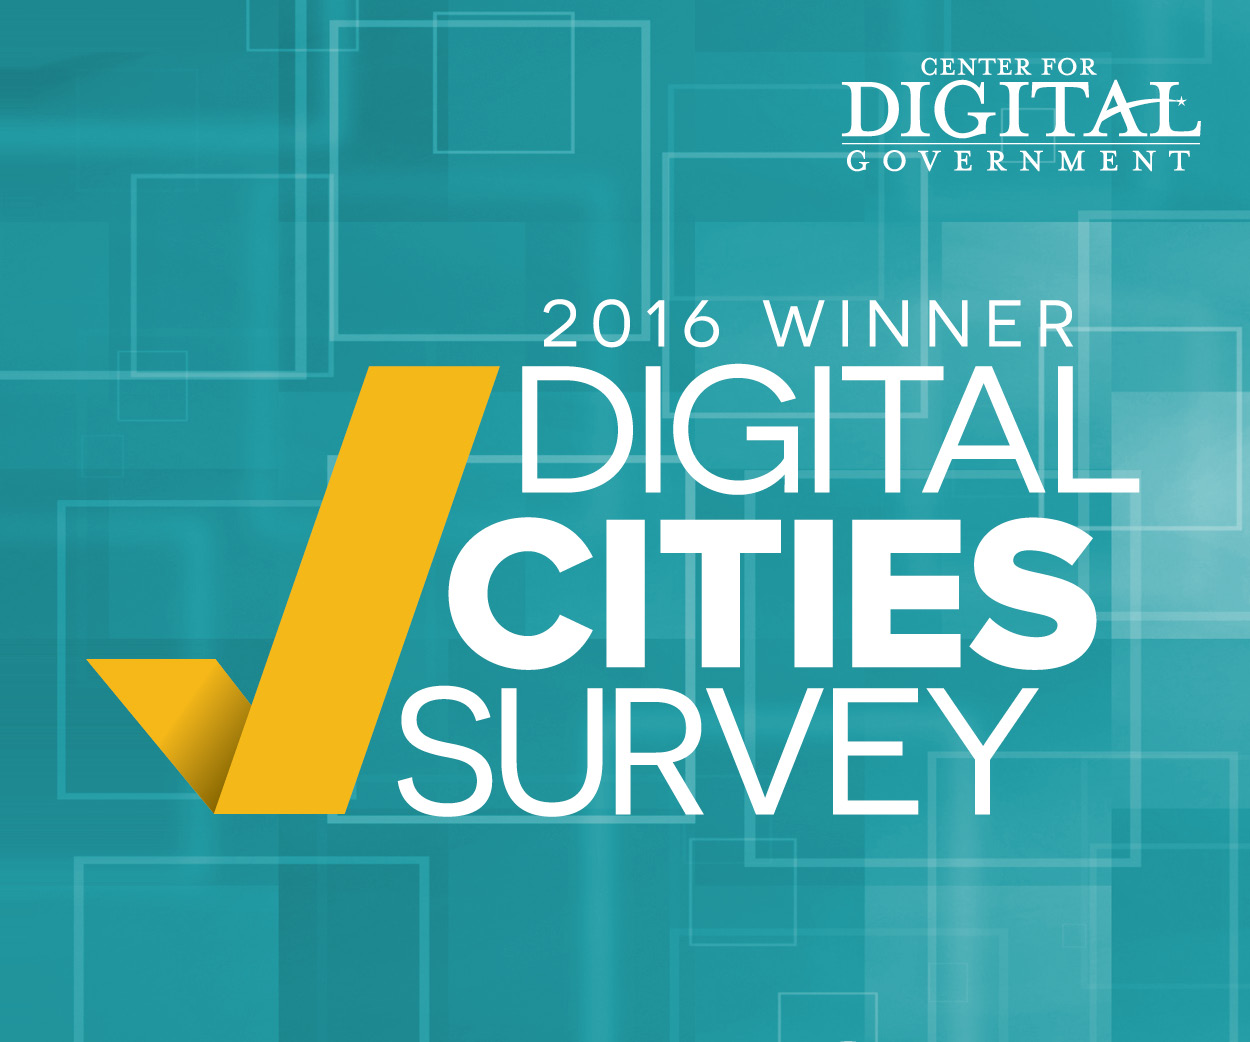 City of Charlotte selected as one of 2016 Digital Cities